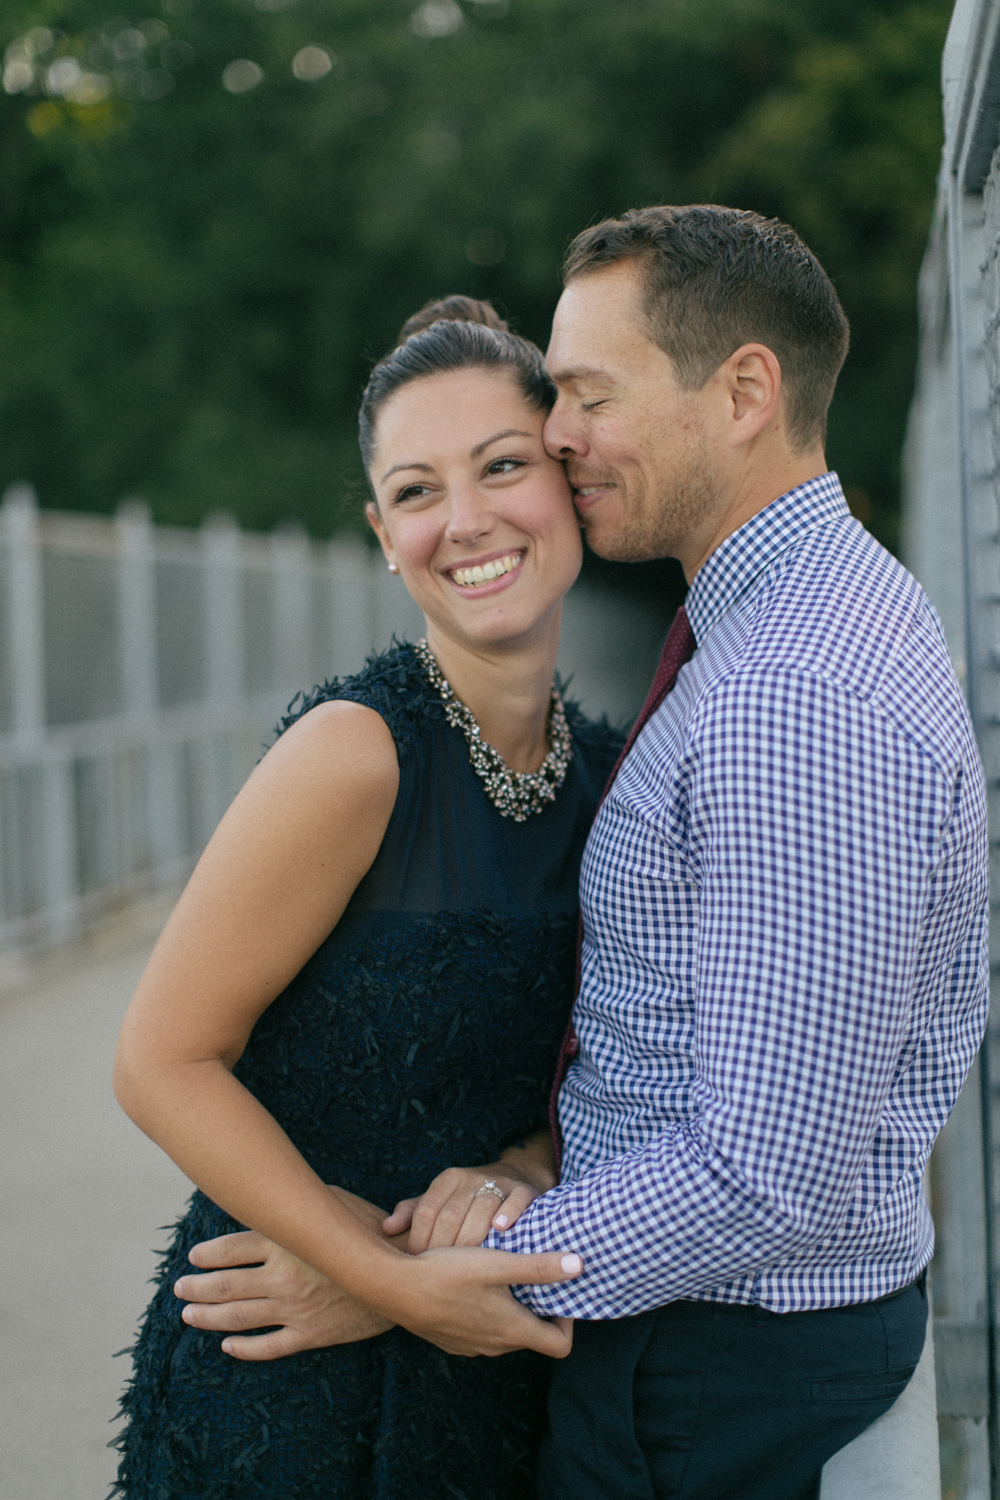 Brooklyn Engagement Photos from Amber Marlow